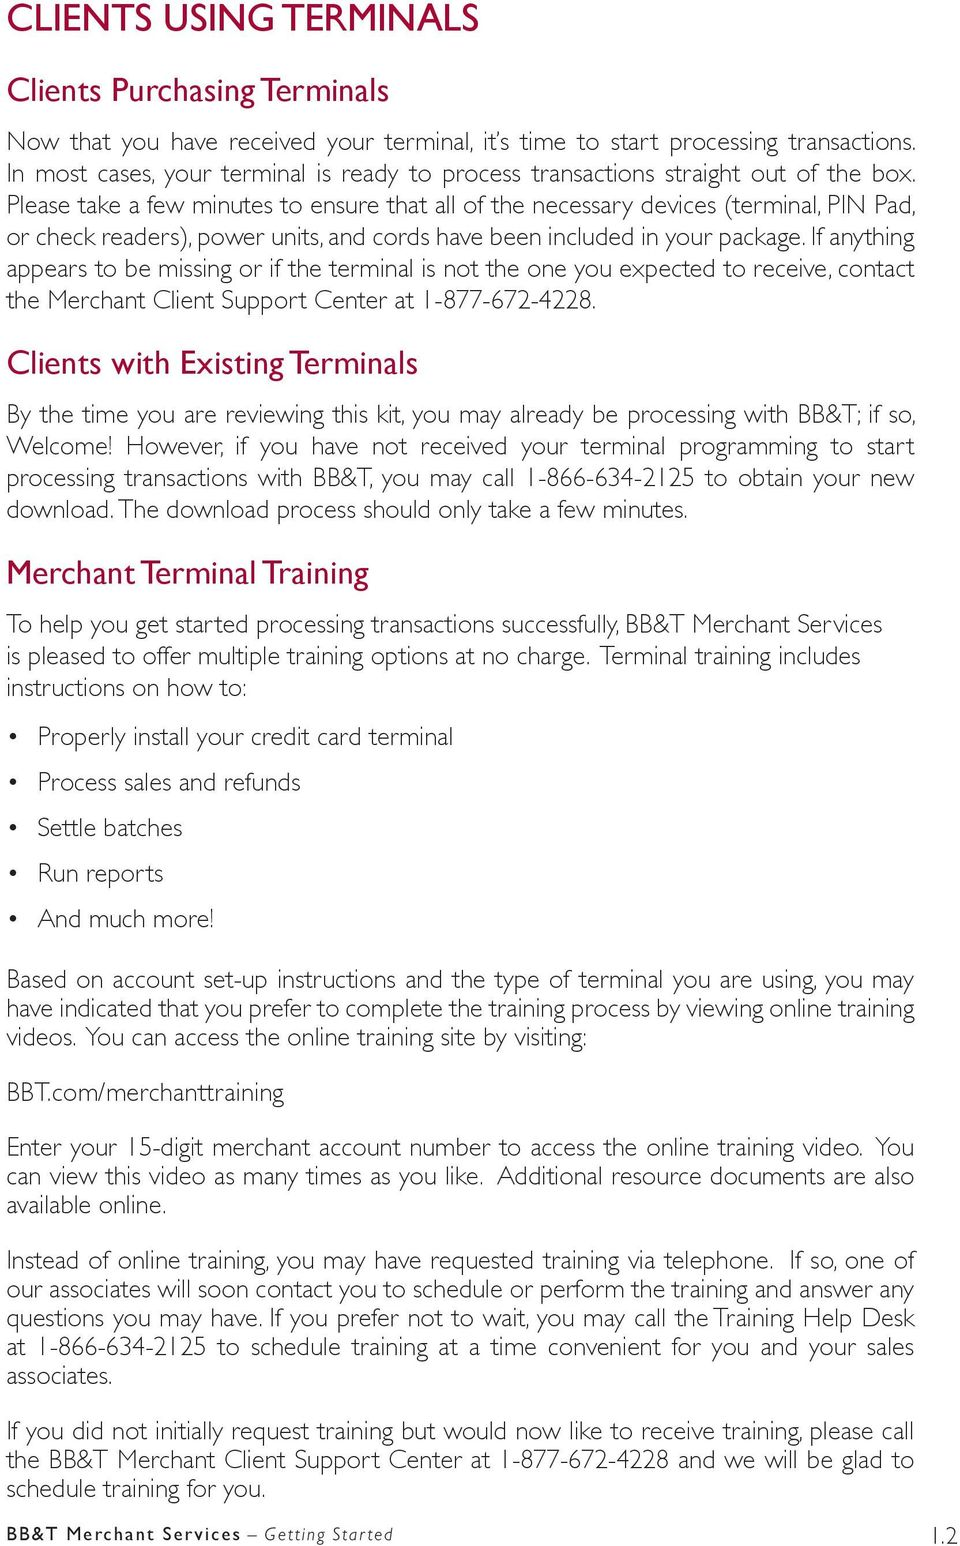 Bb&t merchant services reference kit important information.